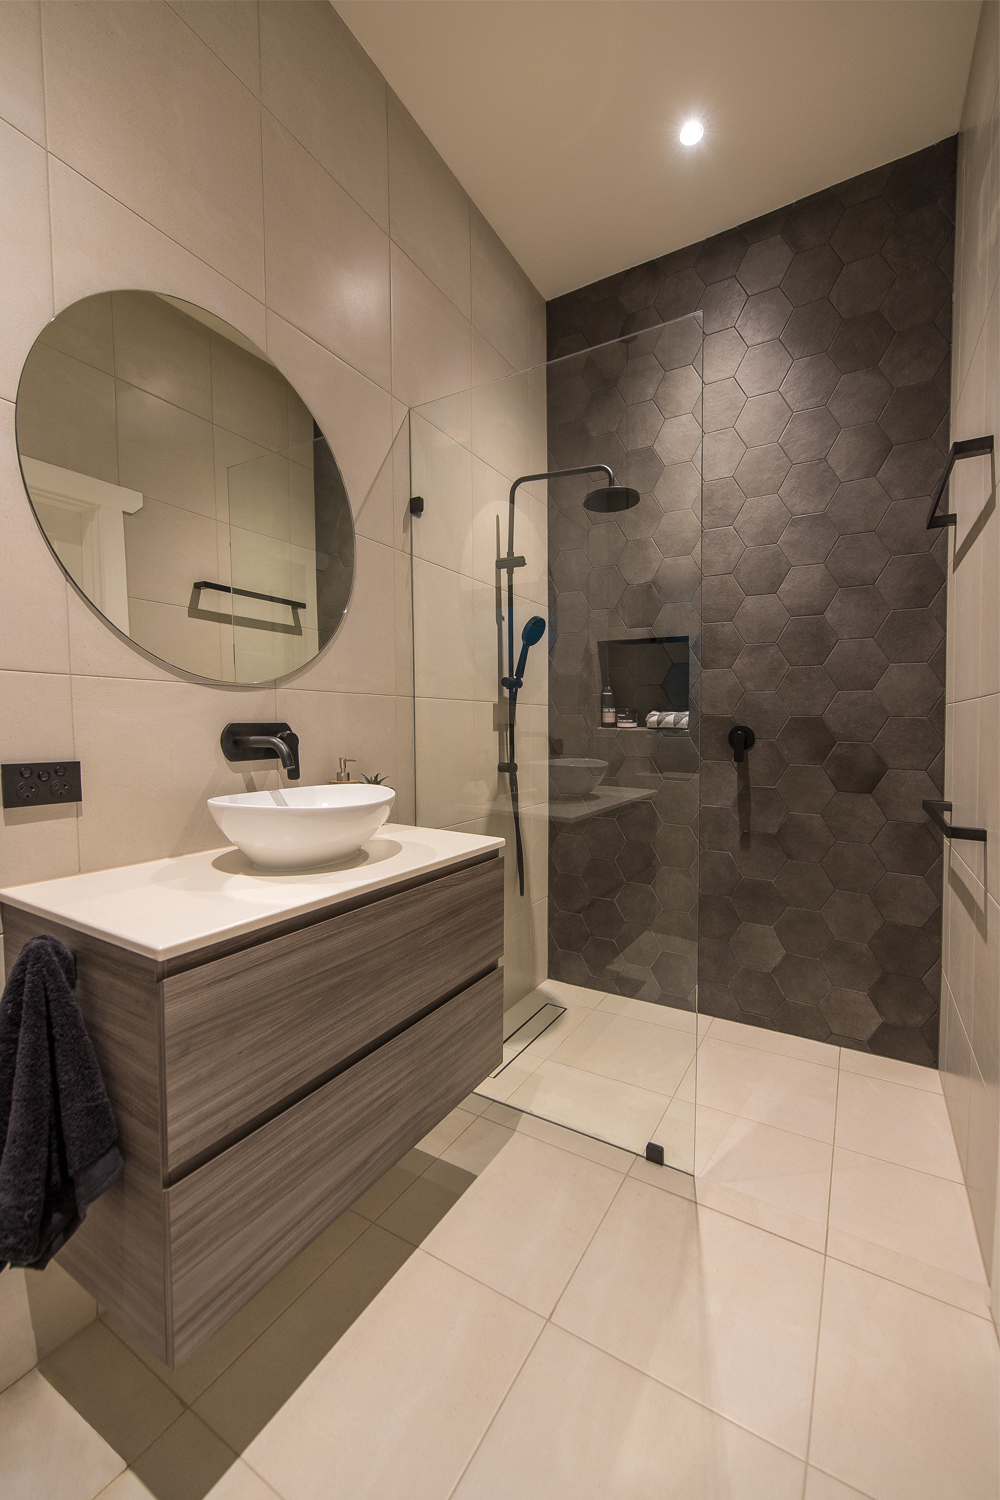 Ensuite project a spacious design completehome for Create a bathroom design online